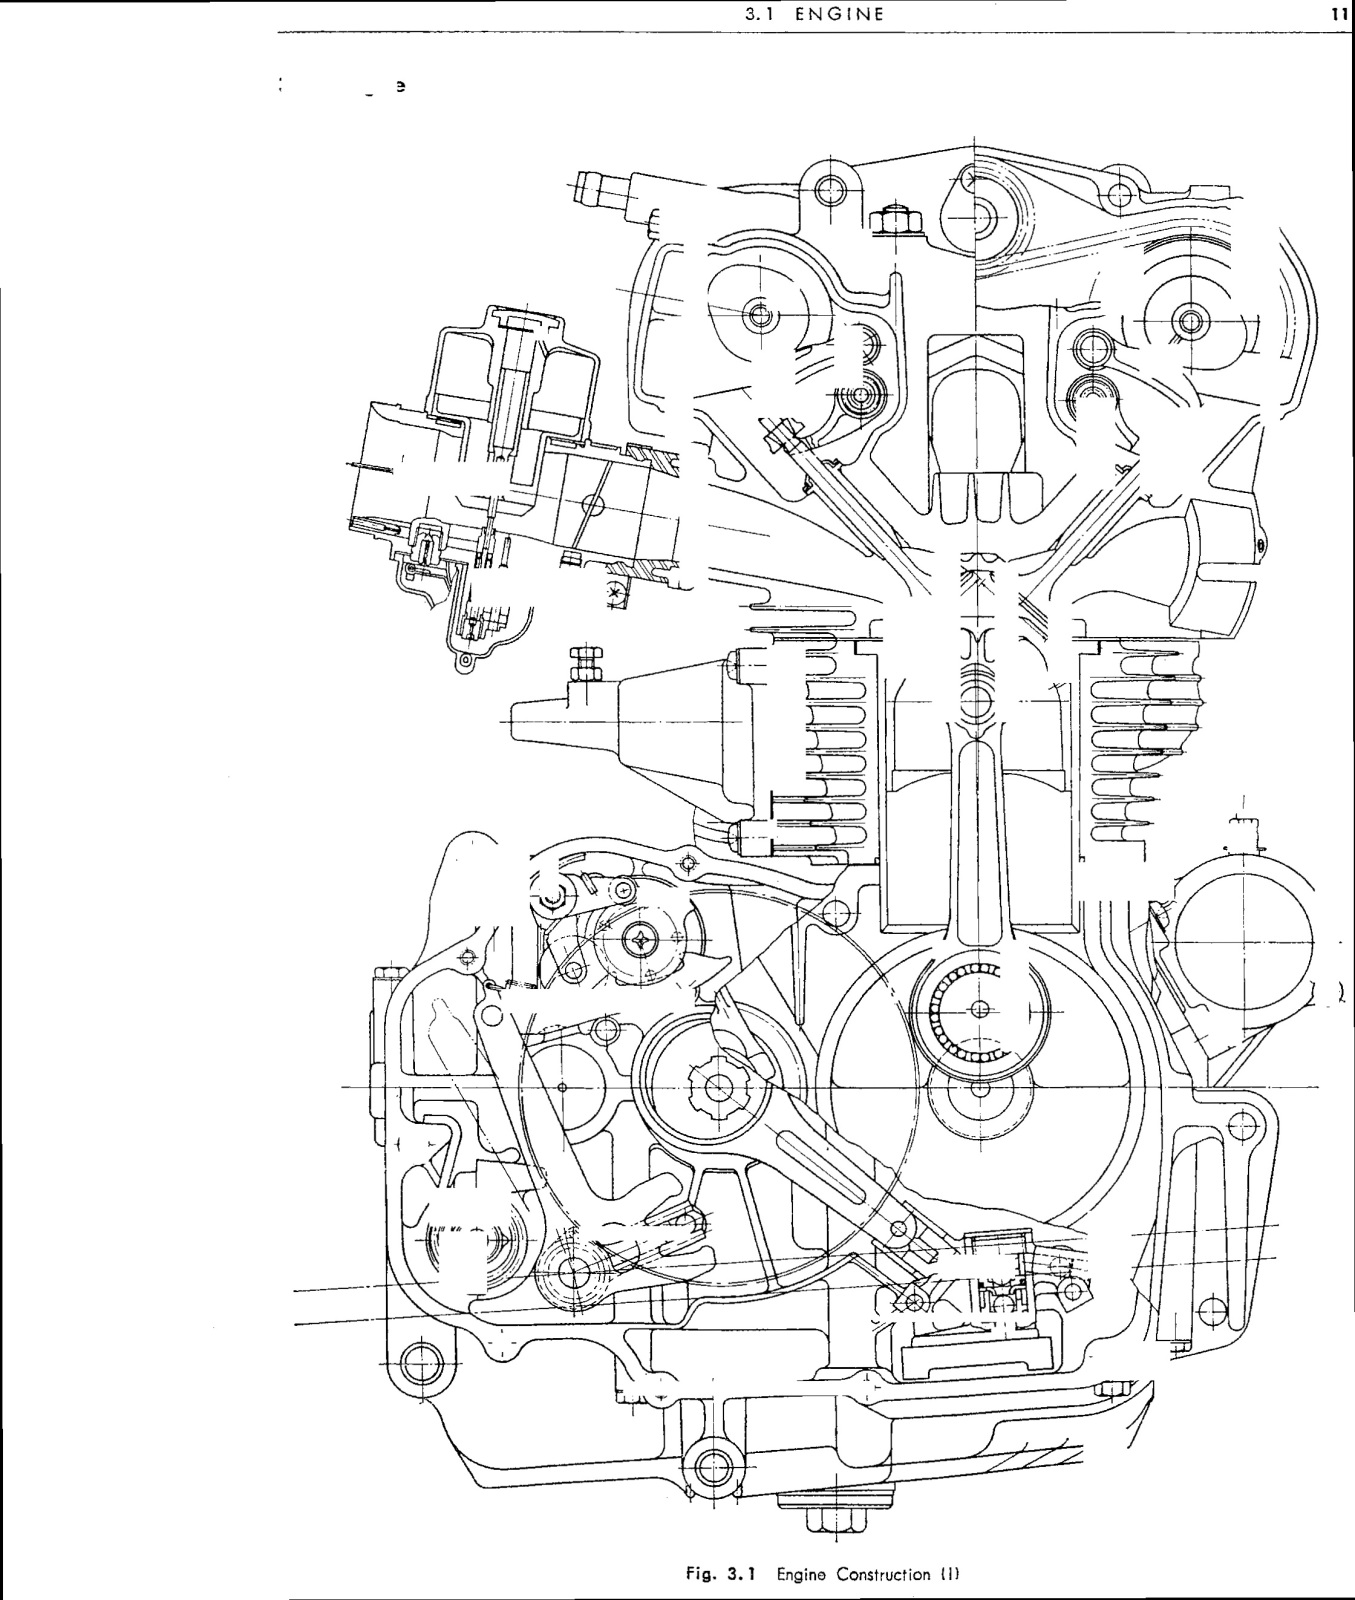 honda motorcycle engine diagram engine pouring out gas